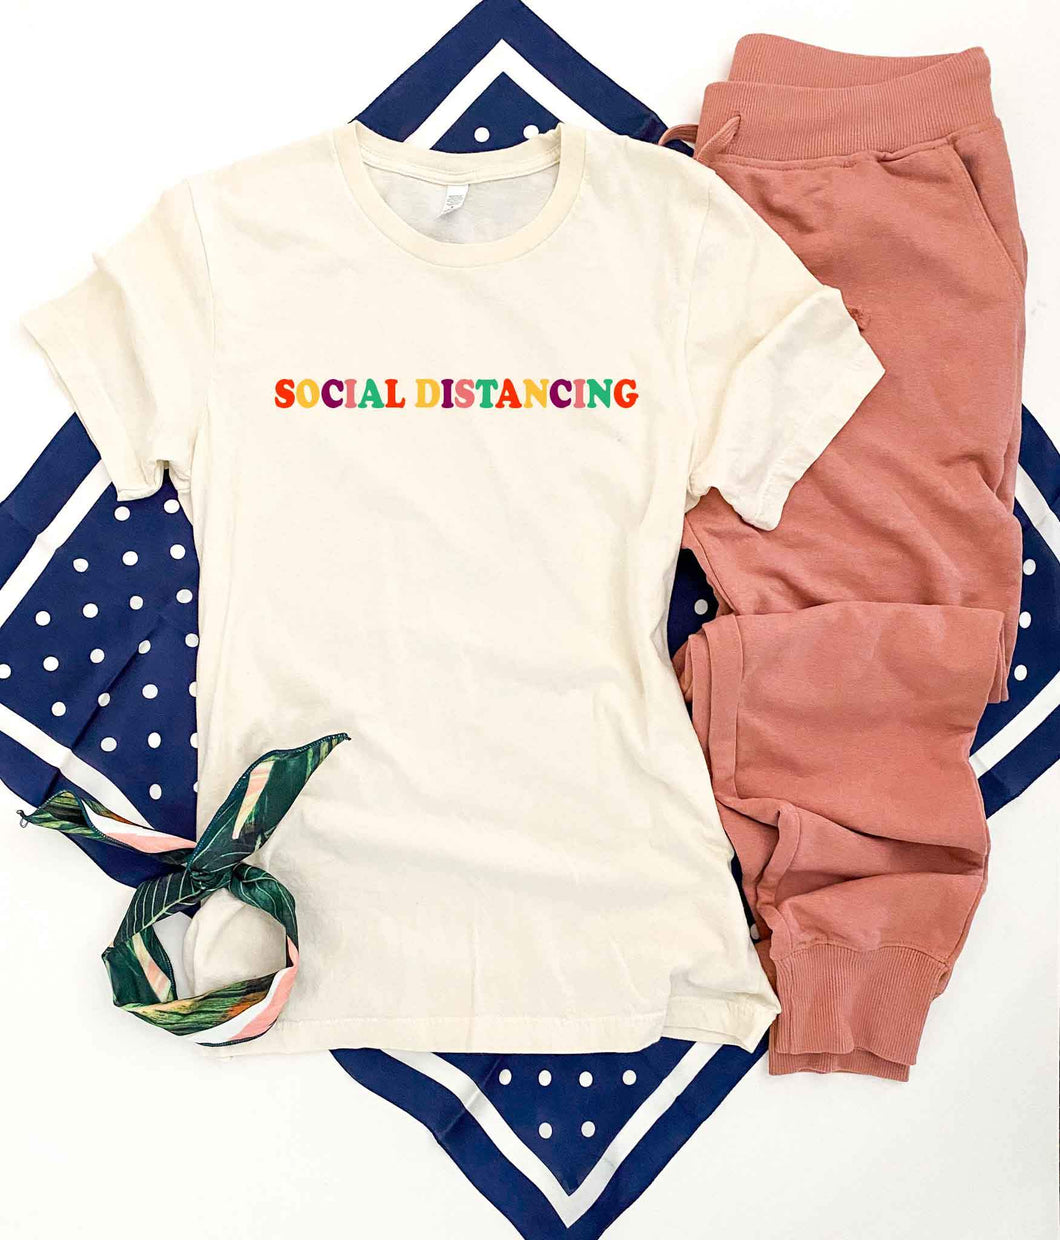 Social distancing tee Short sleeve miscellaneous tee Bella Canvas 3001